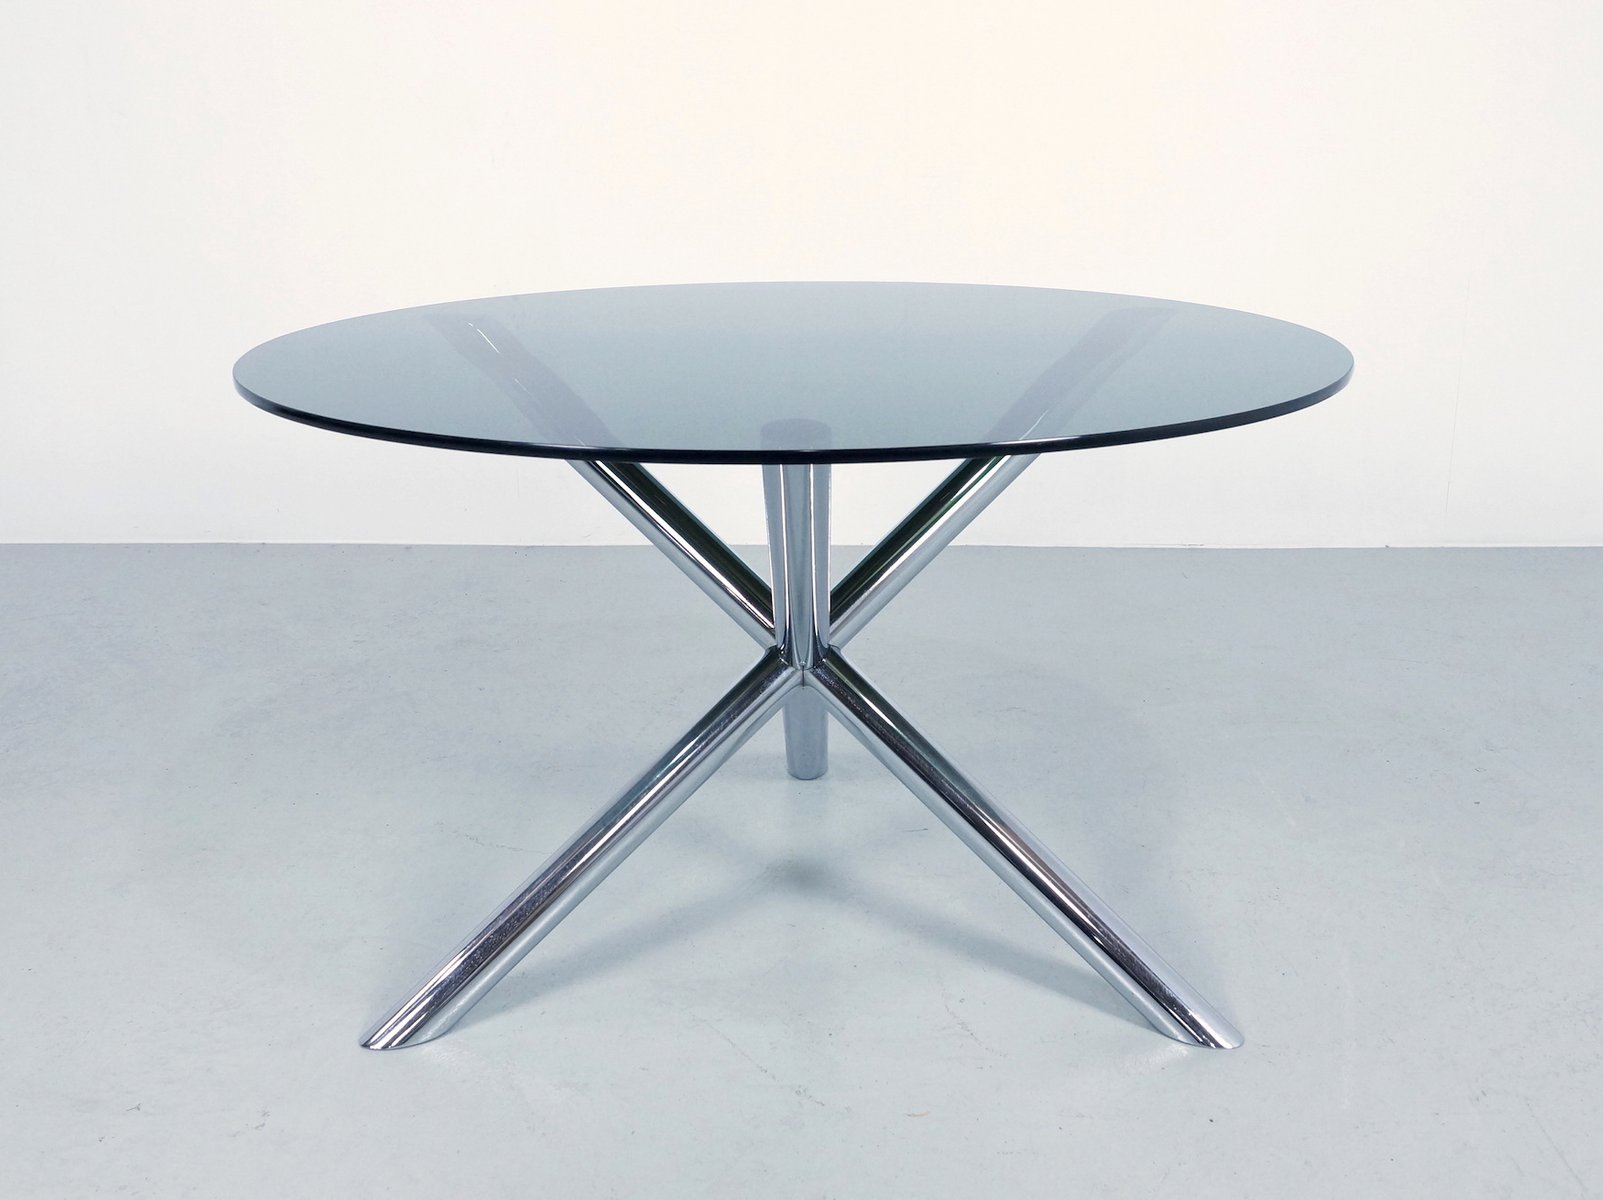 Dining table in chrome and smoked glass by roche bobois 1970s for sale at pa - Table verre roche bobois ...